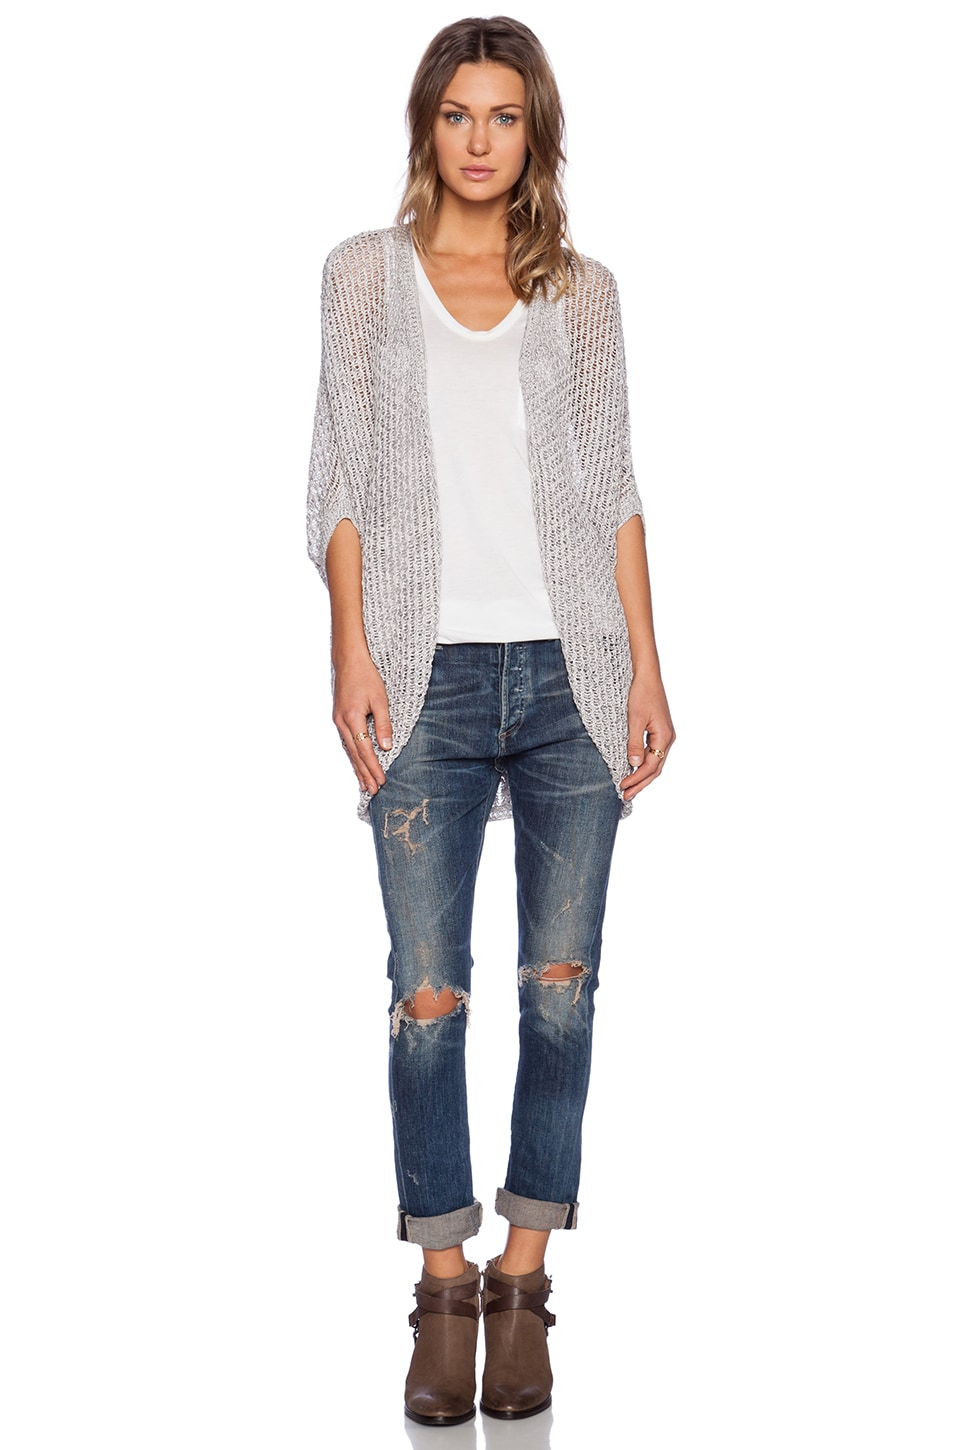 LA Made Marbel Cocoon Cardigan in Salt & Pepper | REVOLVE